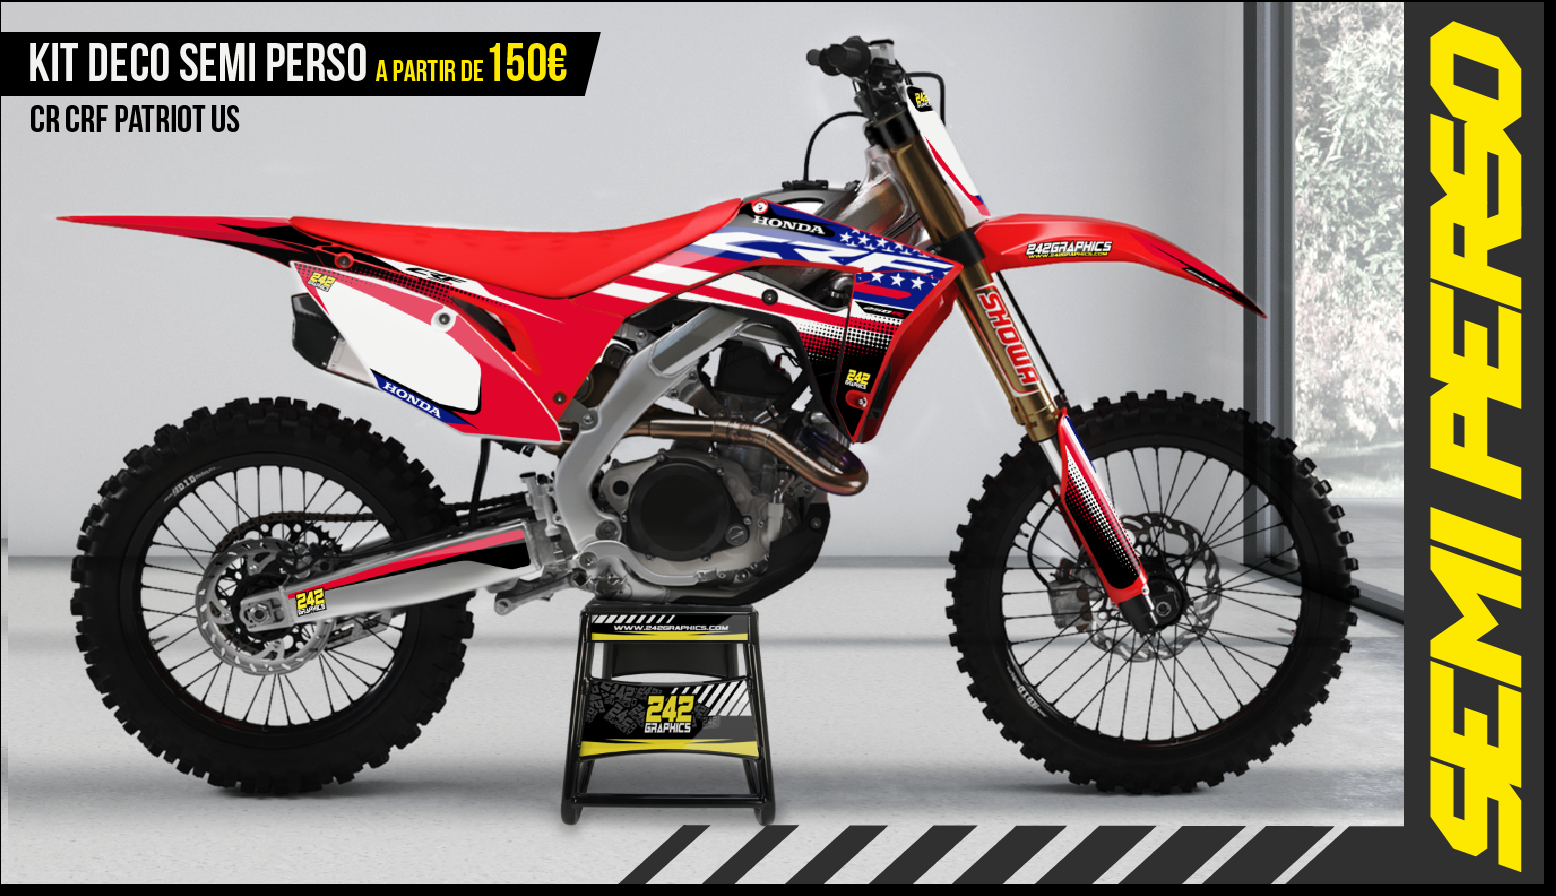 Kit déco perso honda cr crf patriot us by 242graphics